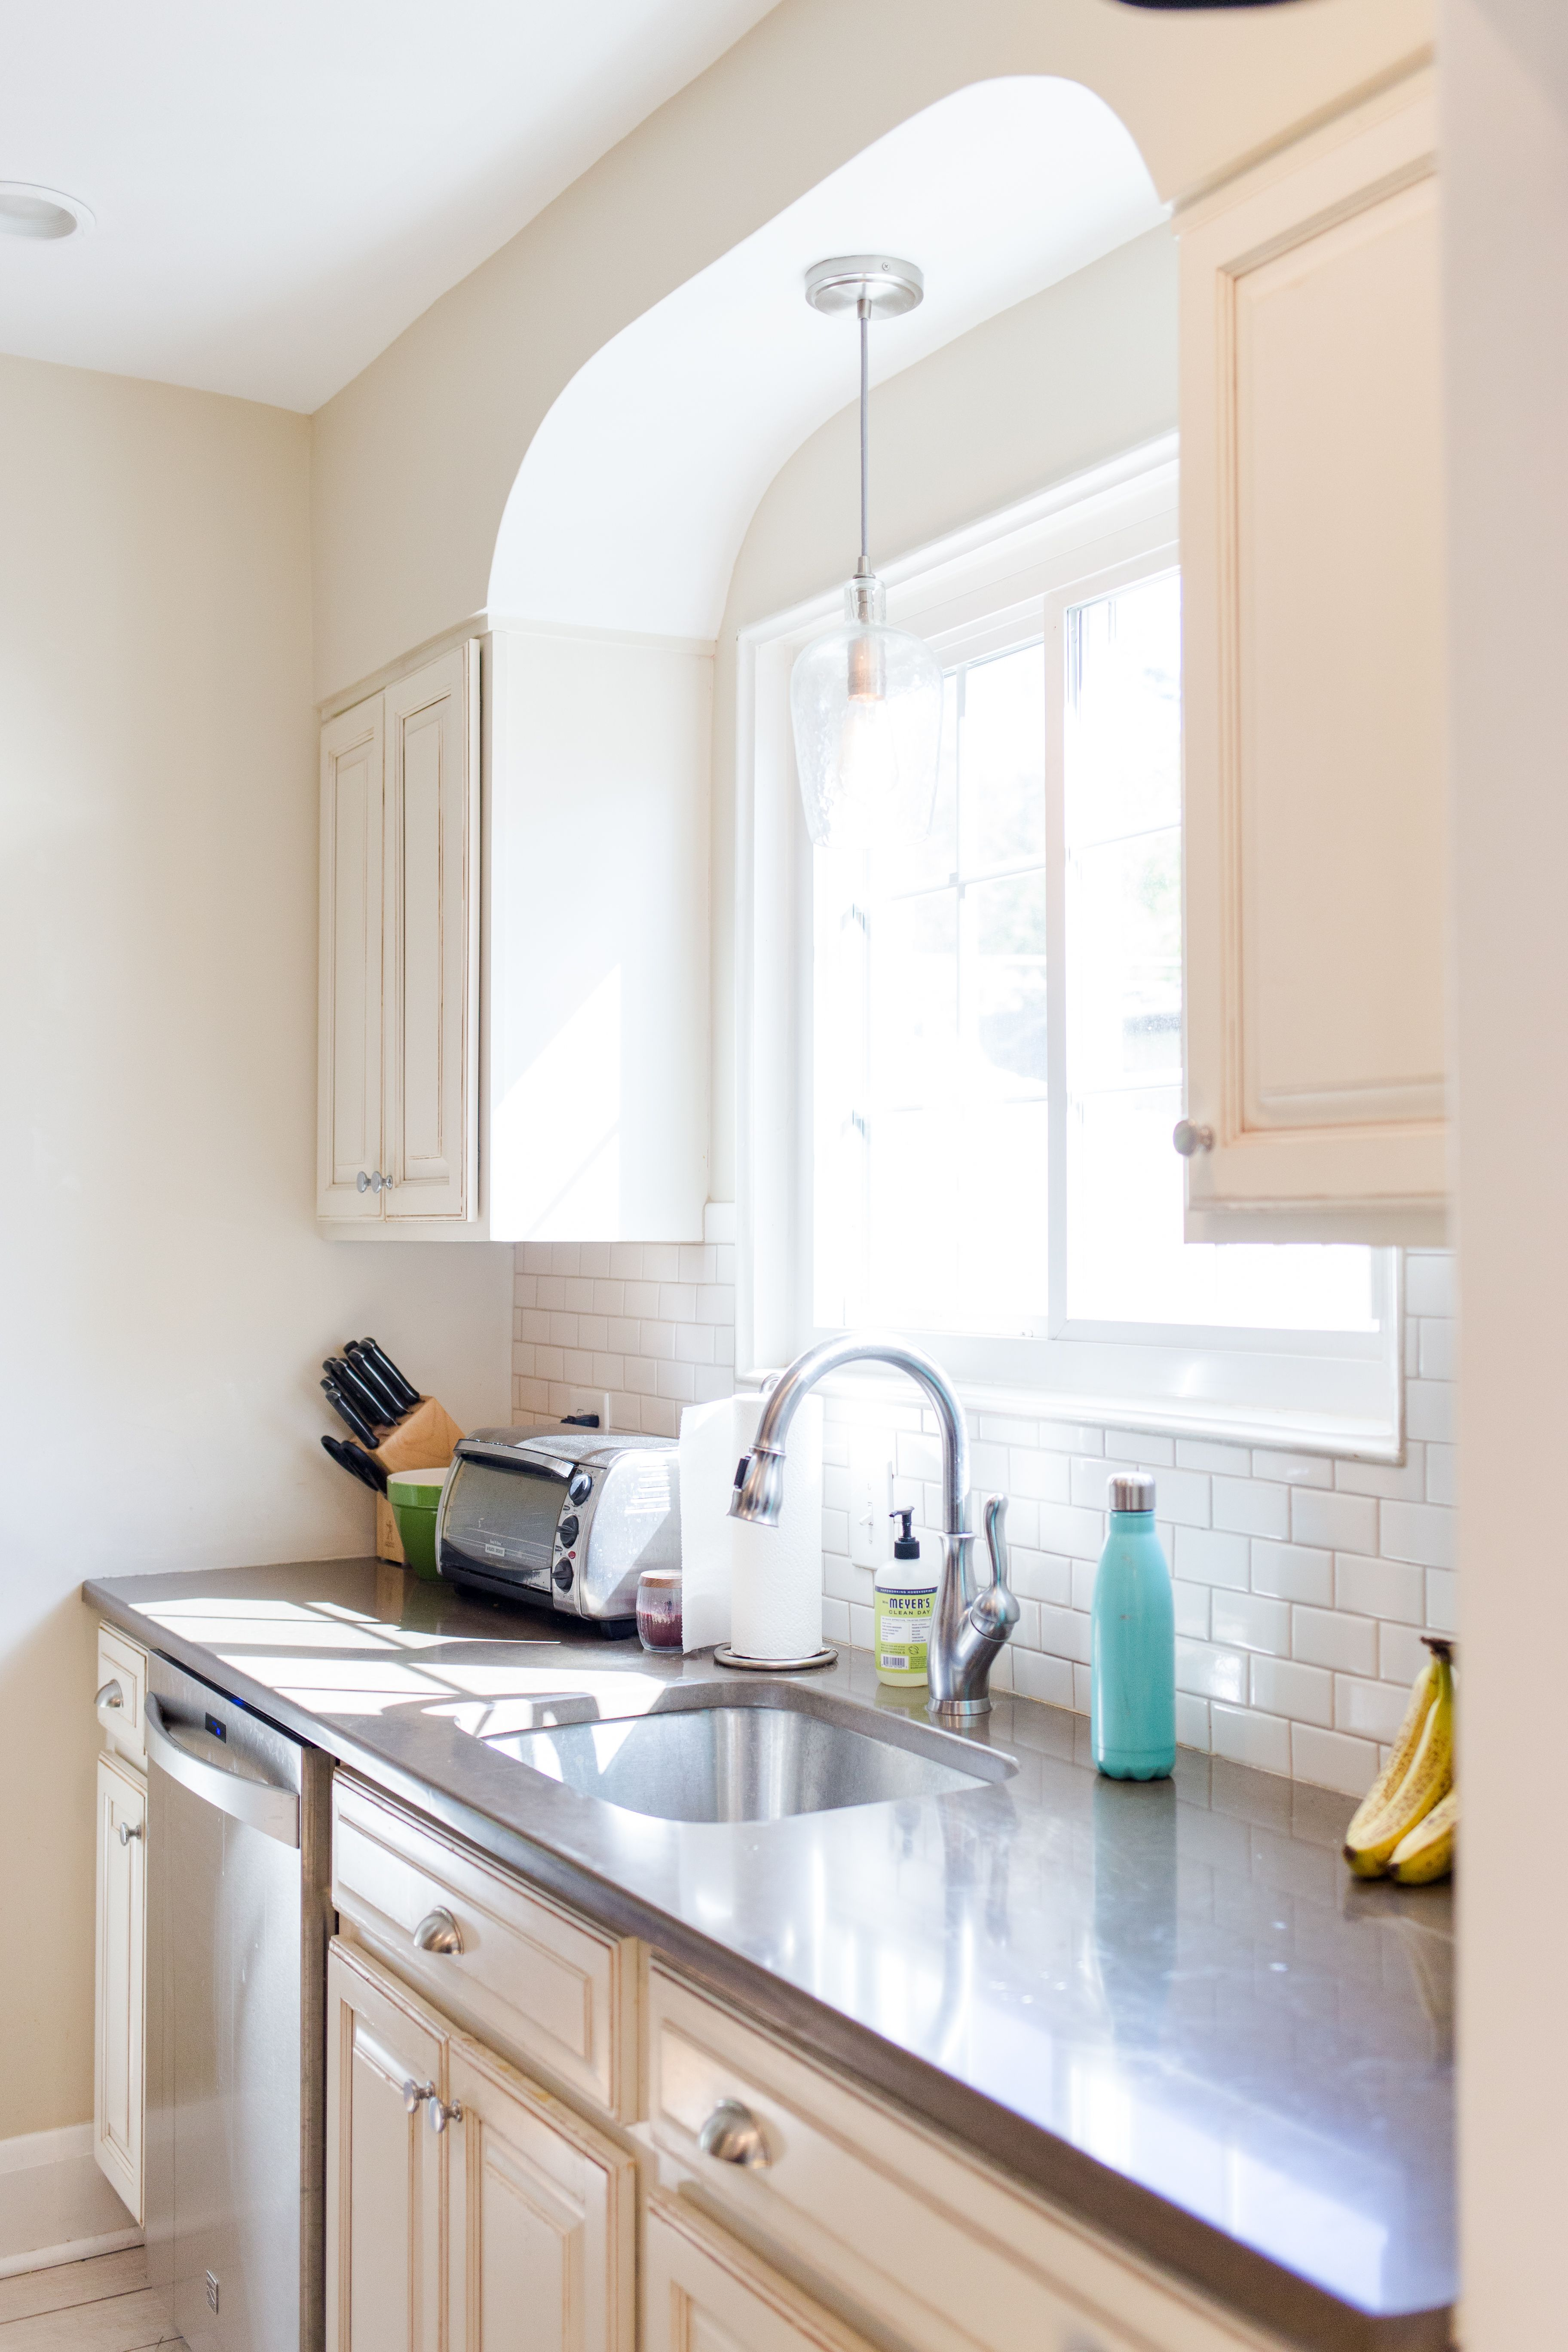 Farmhouse Kitchen in Baltimore, MD | Kitchen, Farmhouse ...